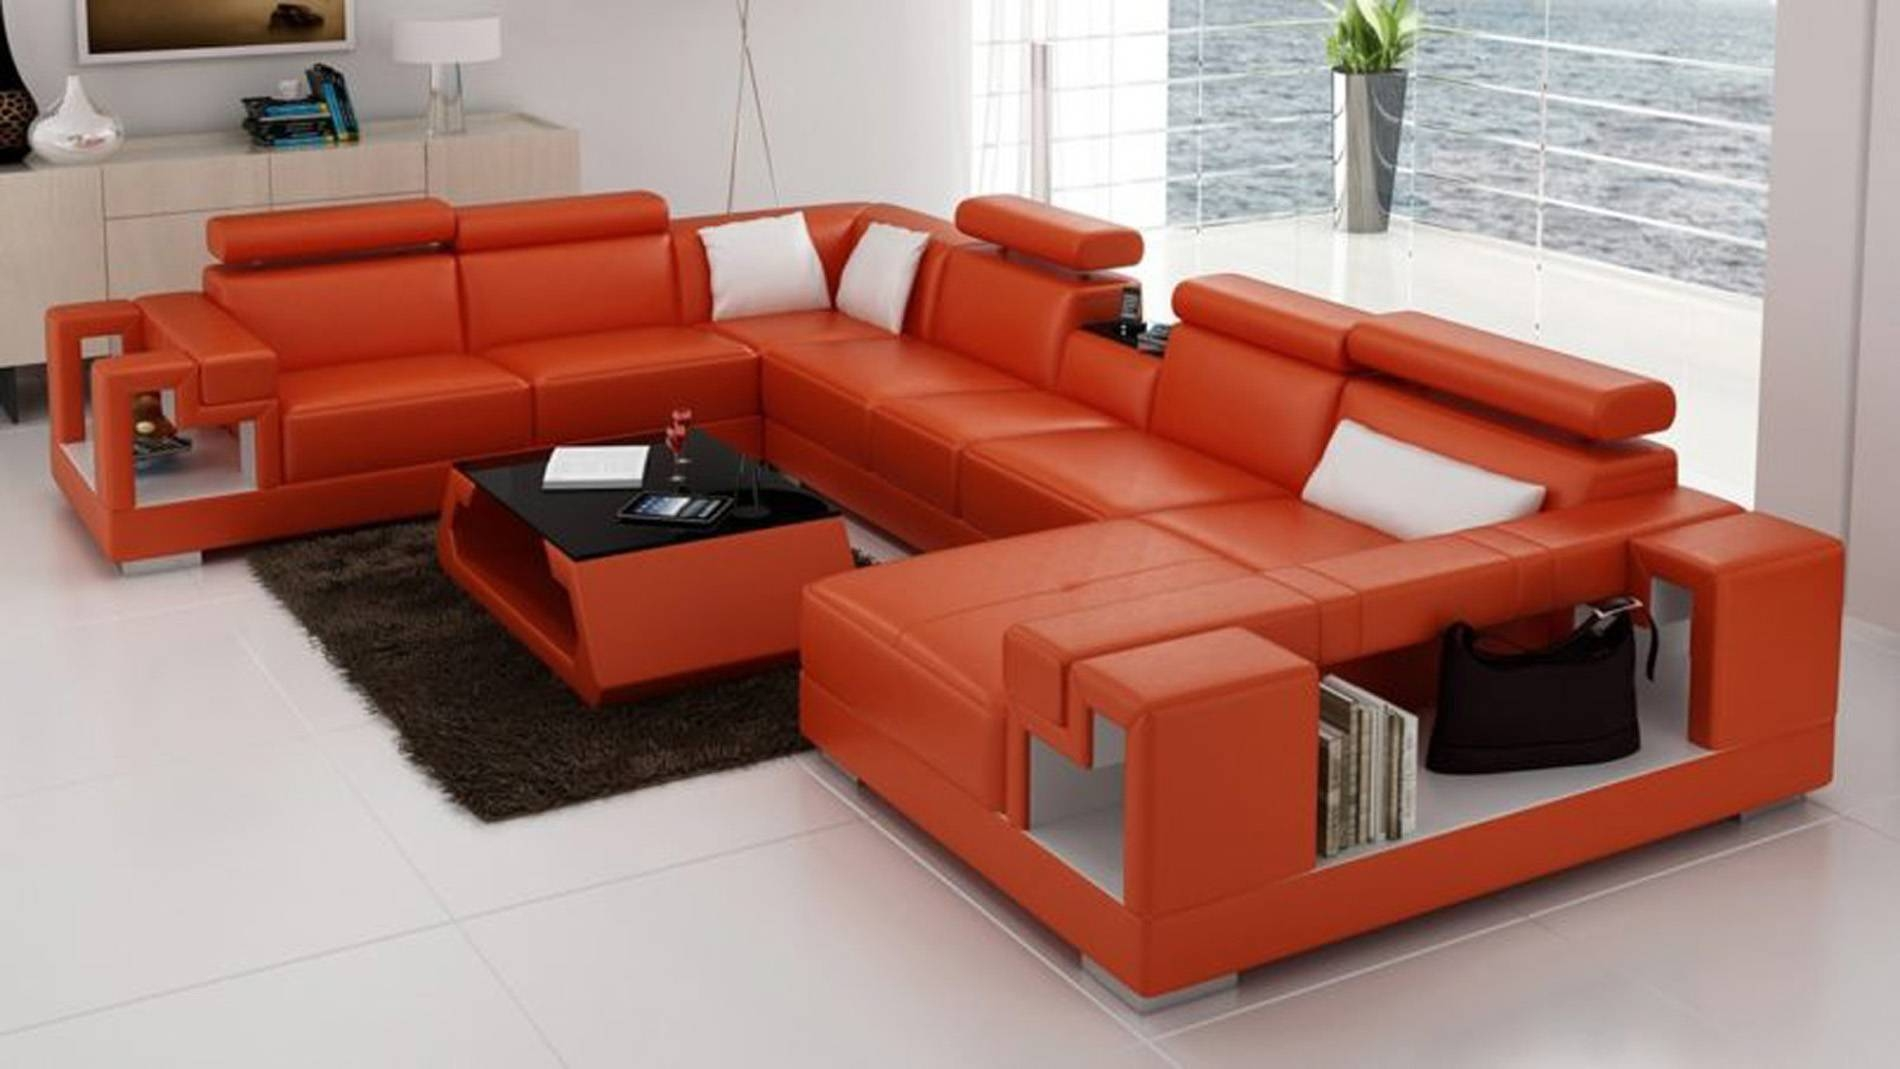 2019 Latest Burnt Orange Leather Sectional Sofas